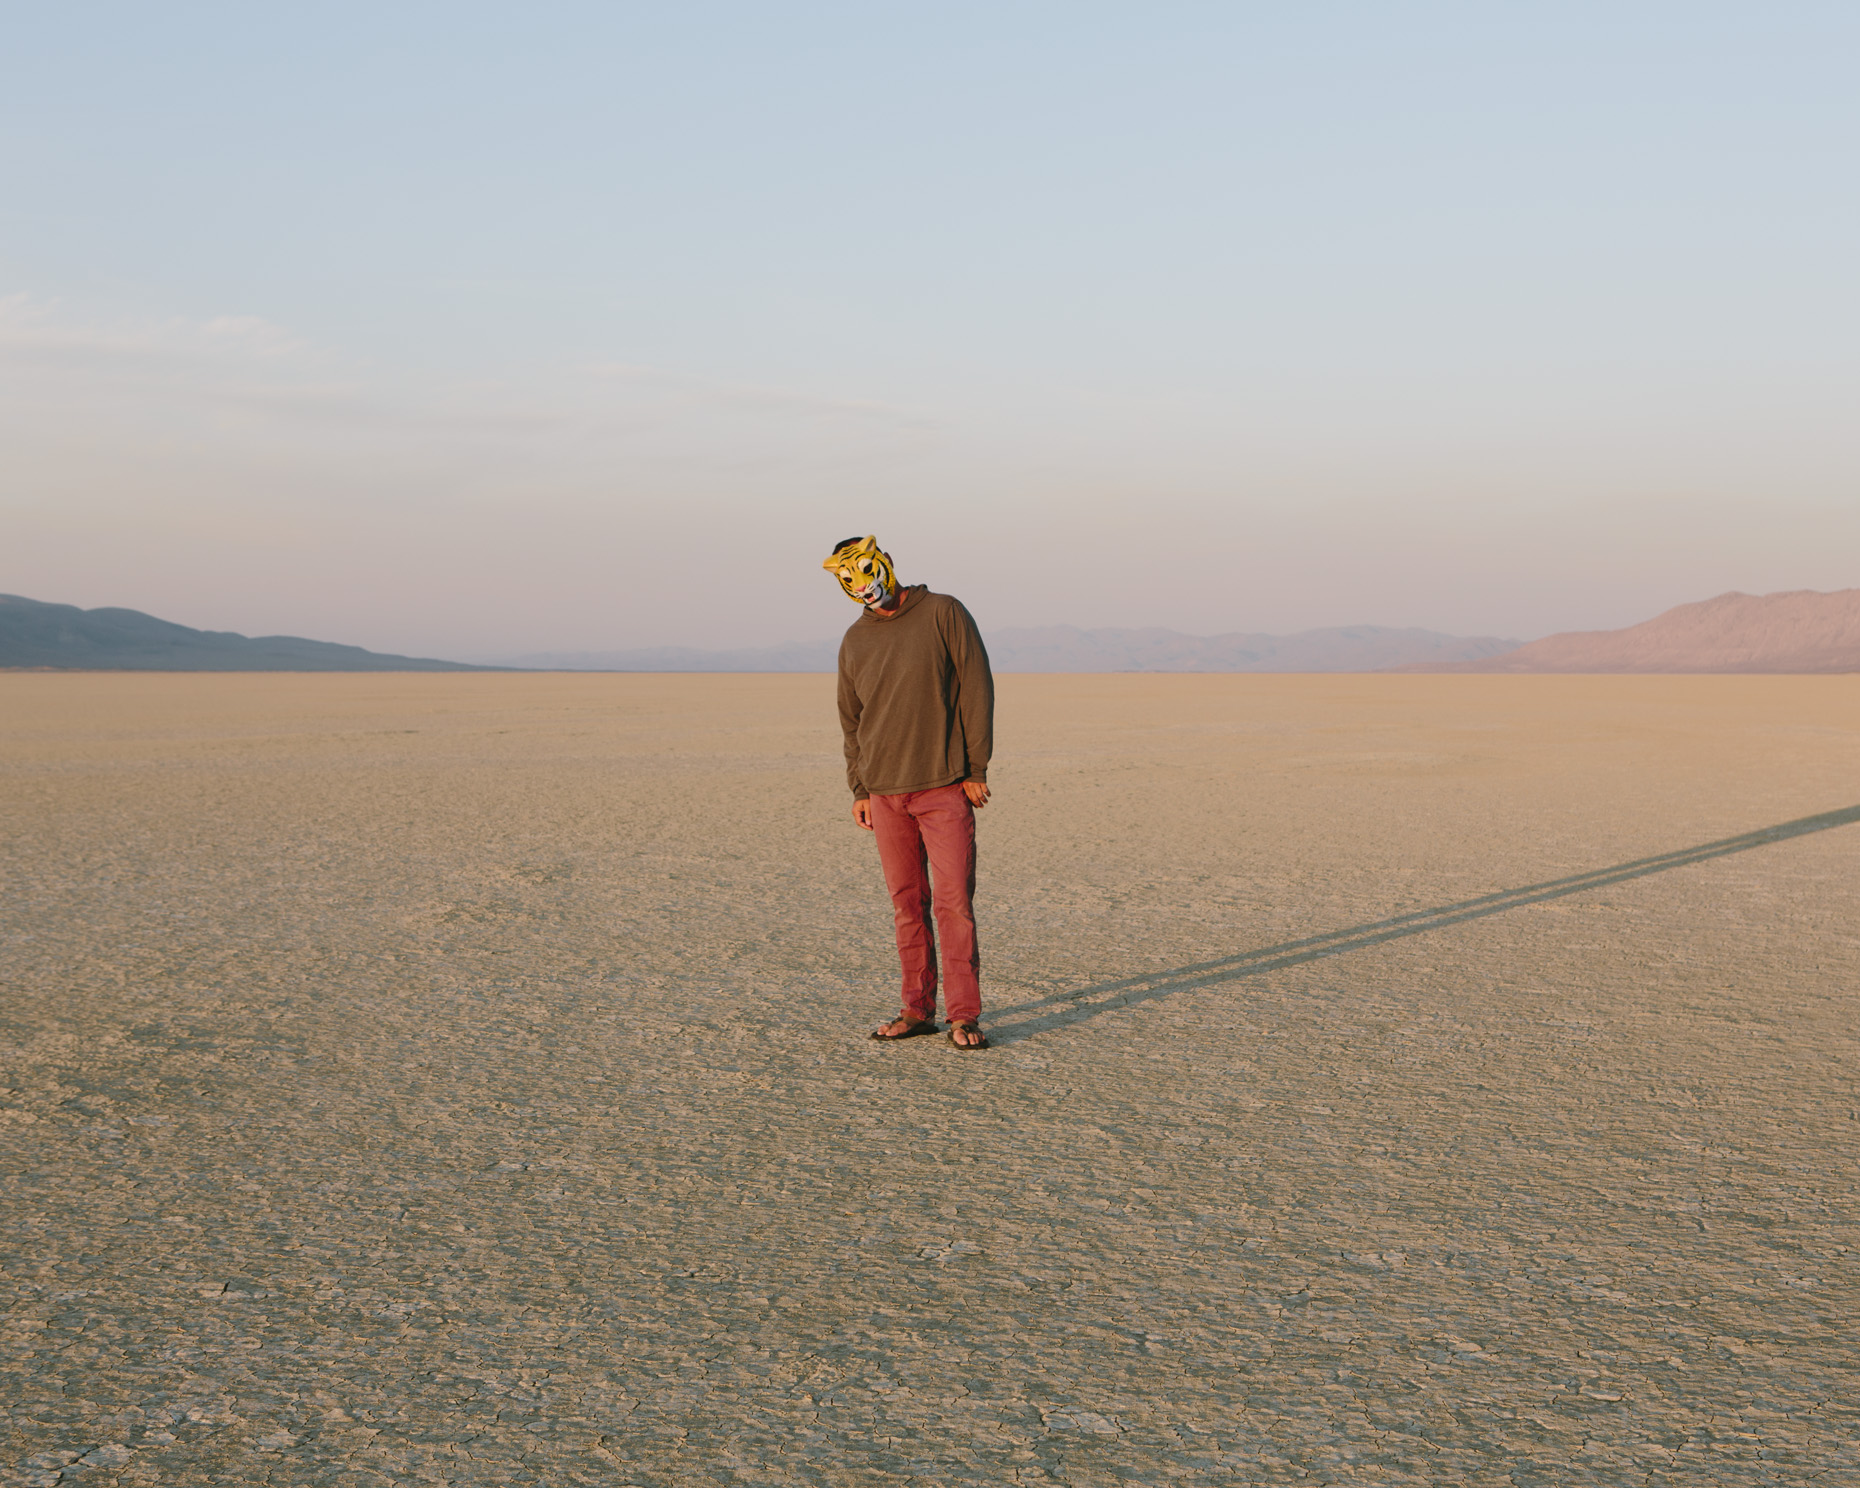 Man wearing mask, standing on playa, Black Rock Desert, Nevada - Paul Edmondson